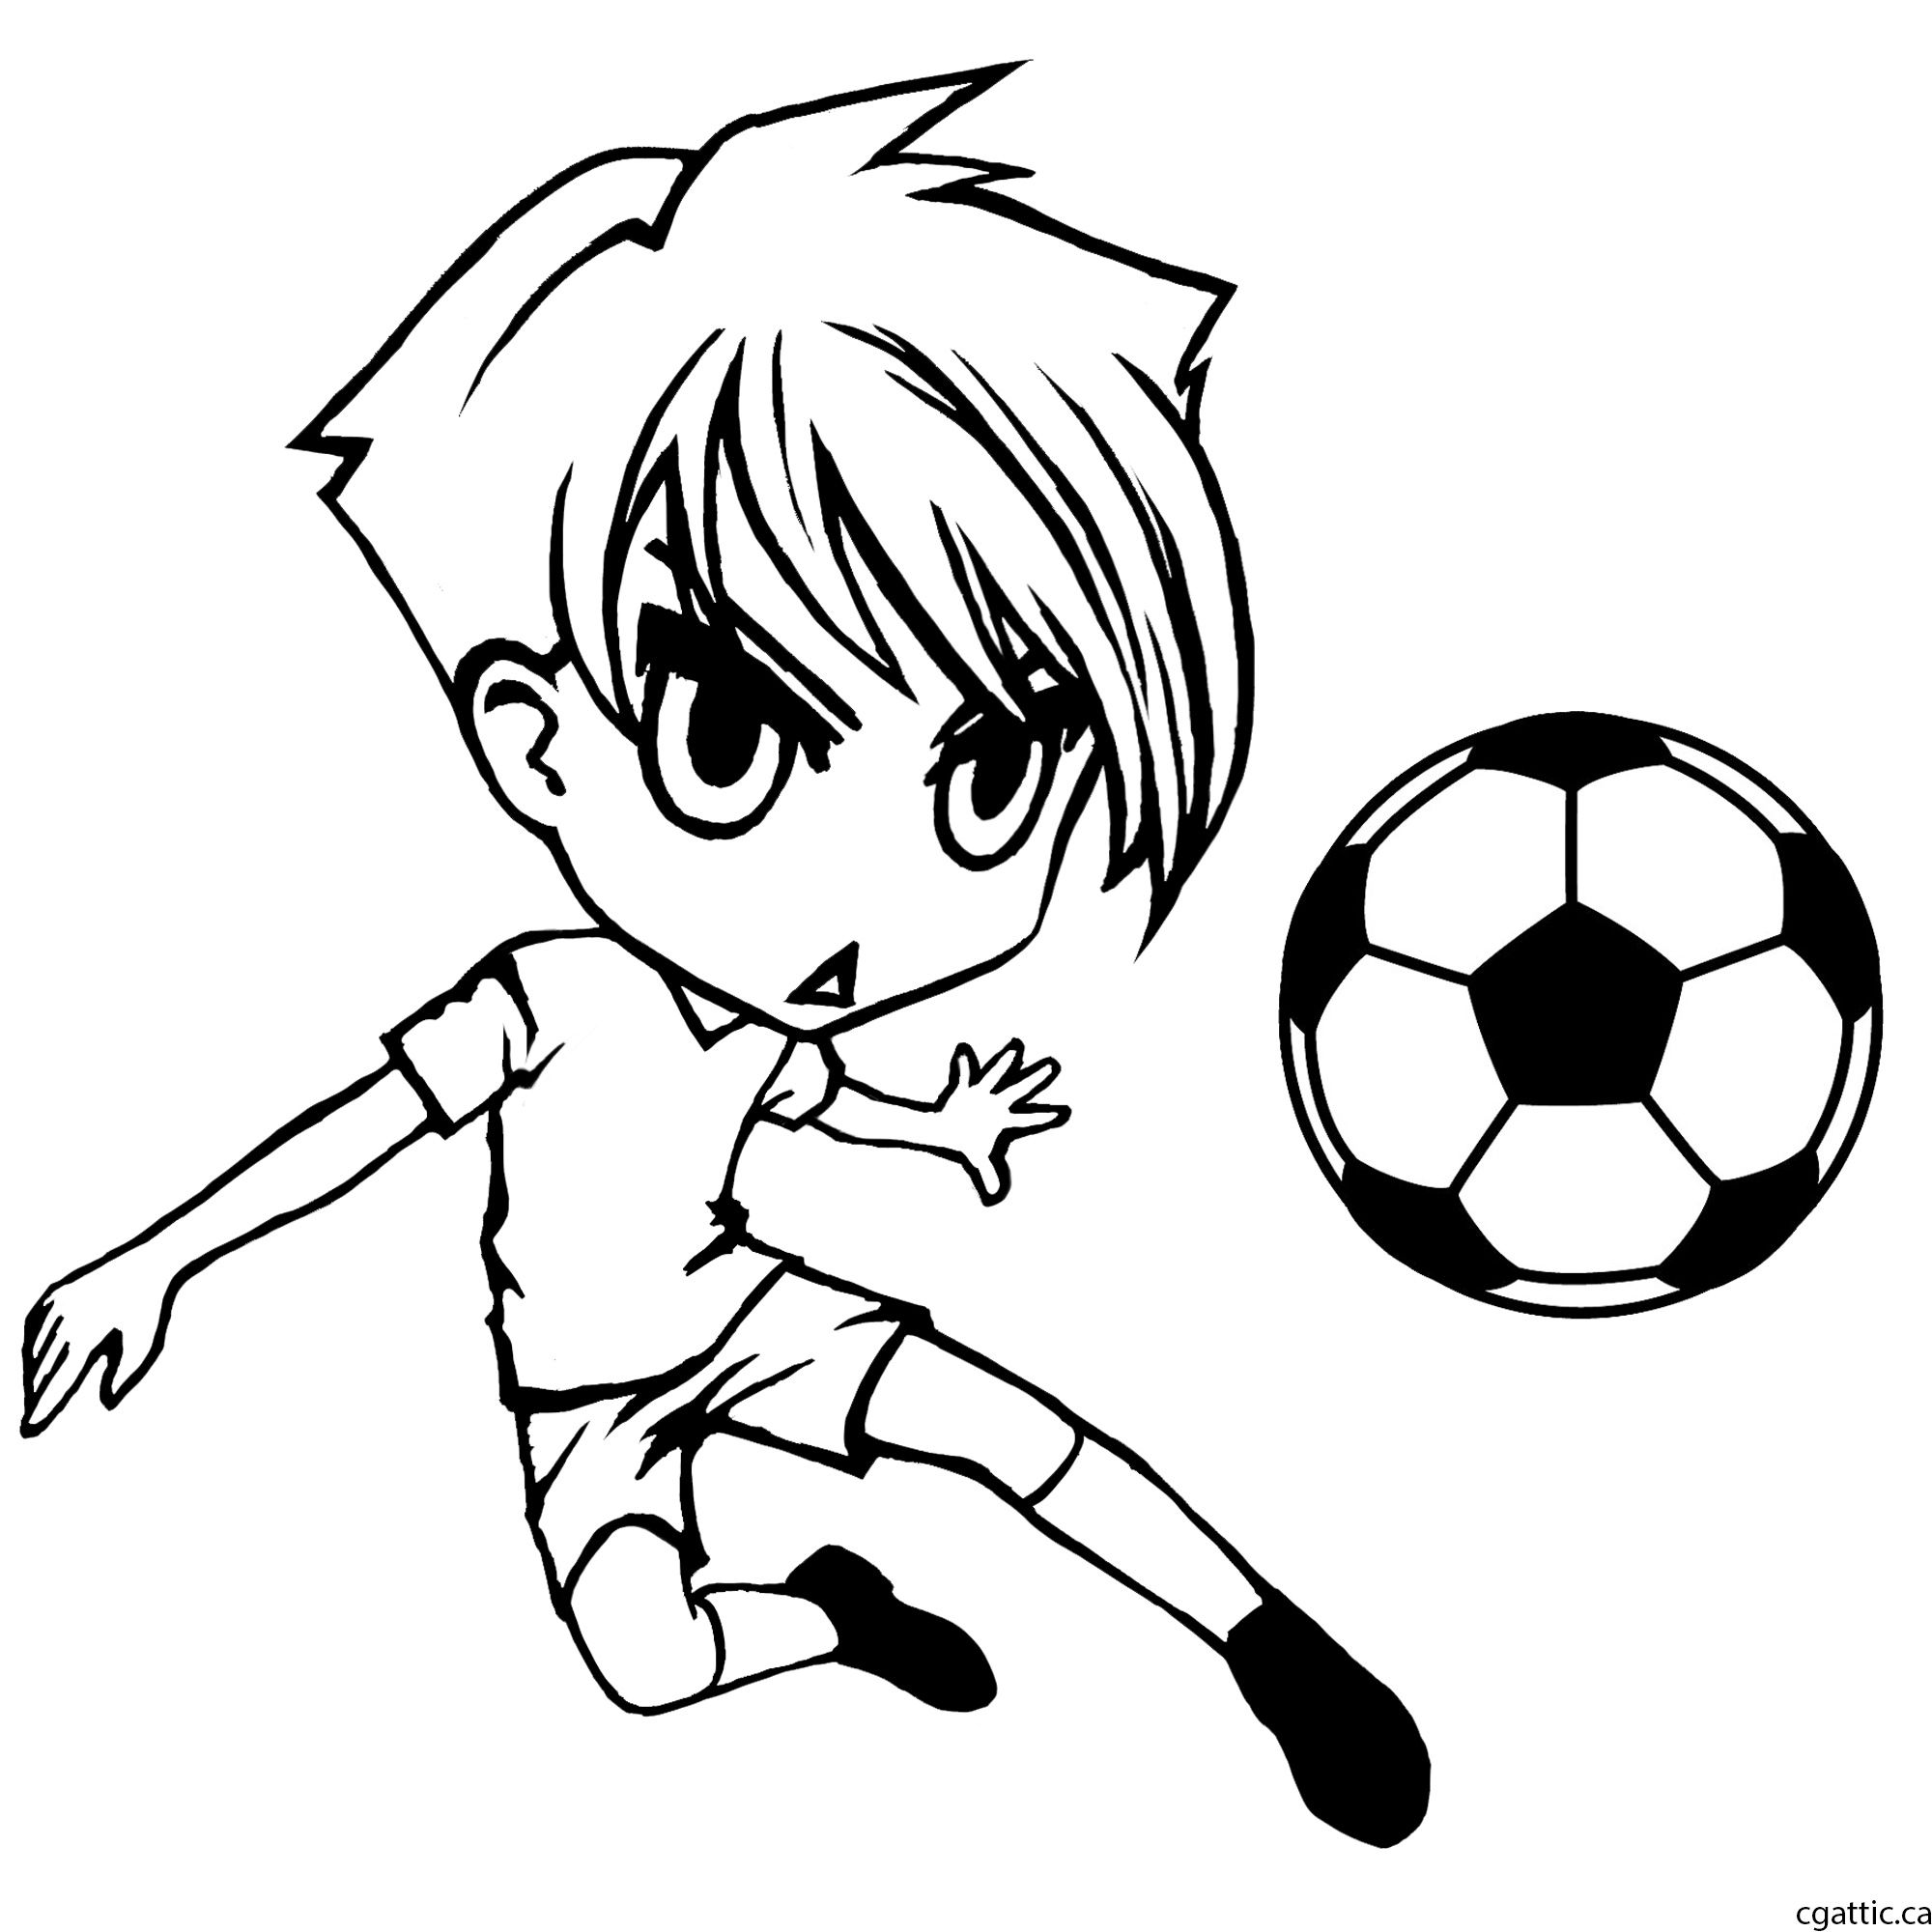 Cartoon soccer player step 2 clean up the sketch to form a nice line drawing